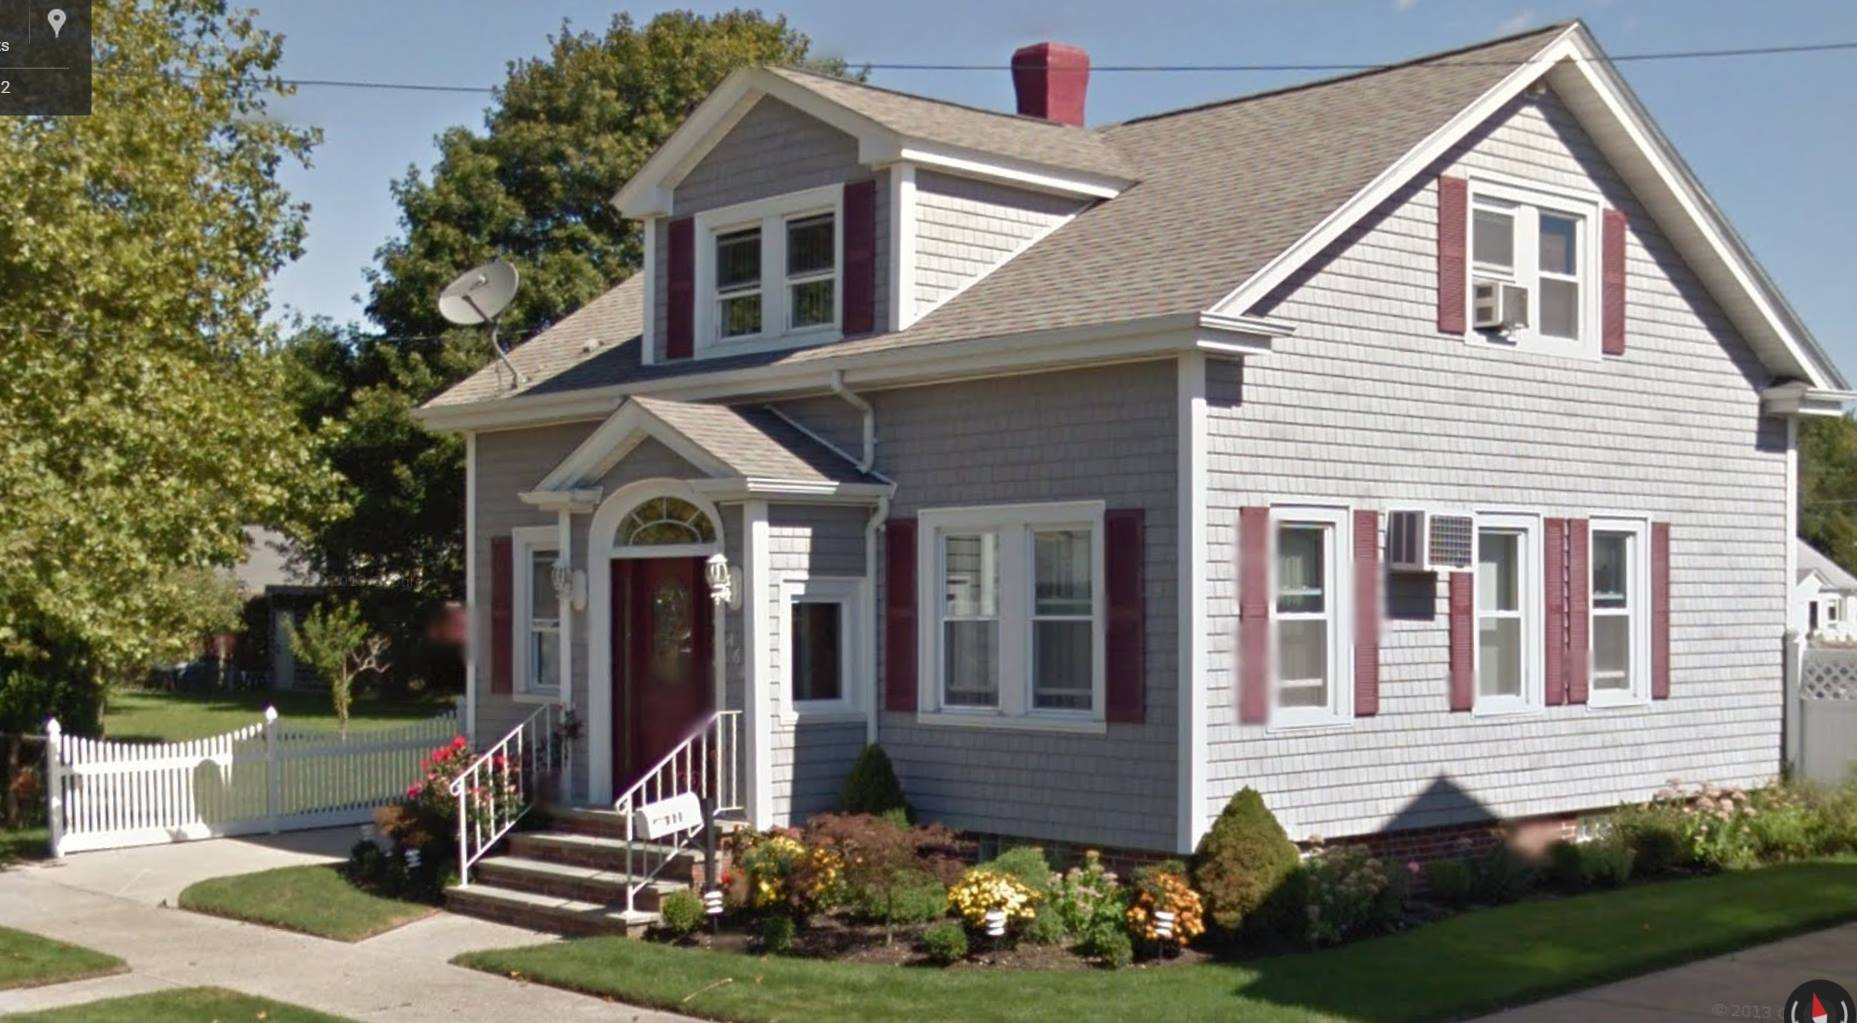 464 Rockdale Ave <a href='http://susanwhitehead.masspropertyvalues.com/index.php?types[]=1&types[]=2&areas[]=city:New Bedford&beds=0&baths=0&min=0&max=100000000&map=0&sortby=listings.listingdate DESC&quick=1&submit=Search' title='Search Properties in New Bedford'>New Bedford</a> MA 02740